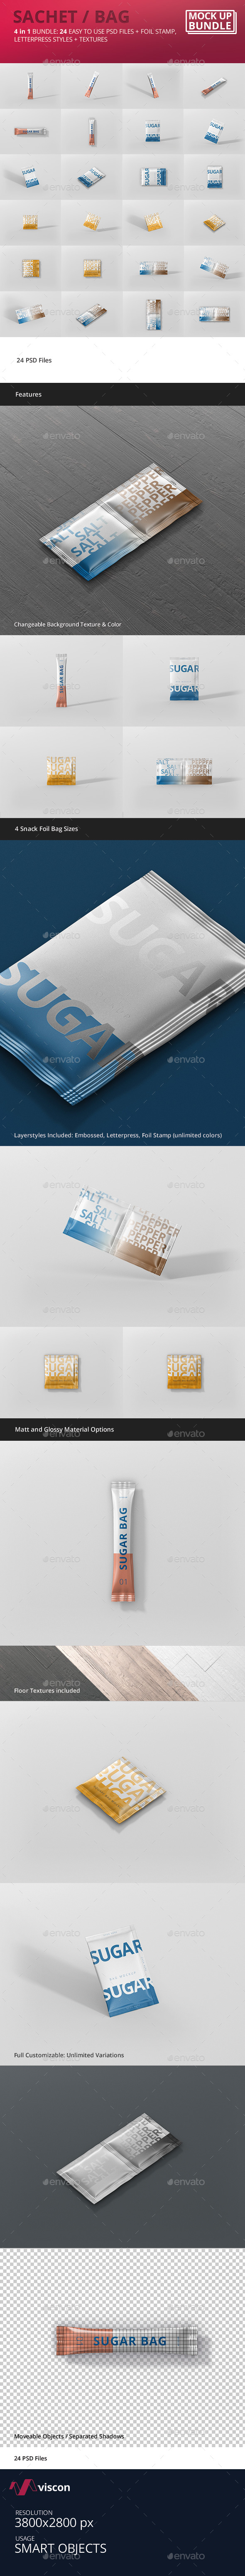 GraphicRiver Sachet Bag Mockup Bundle 20661004